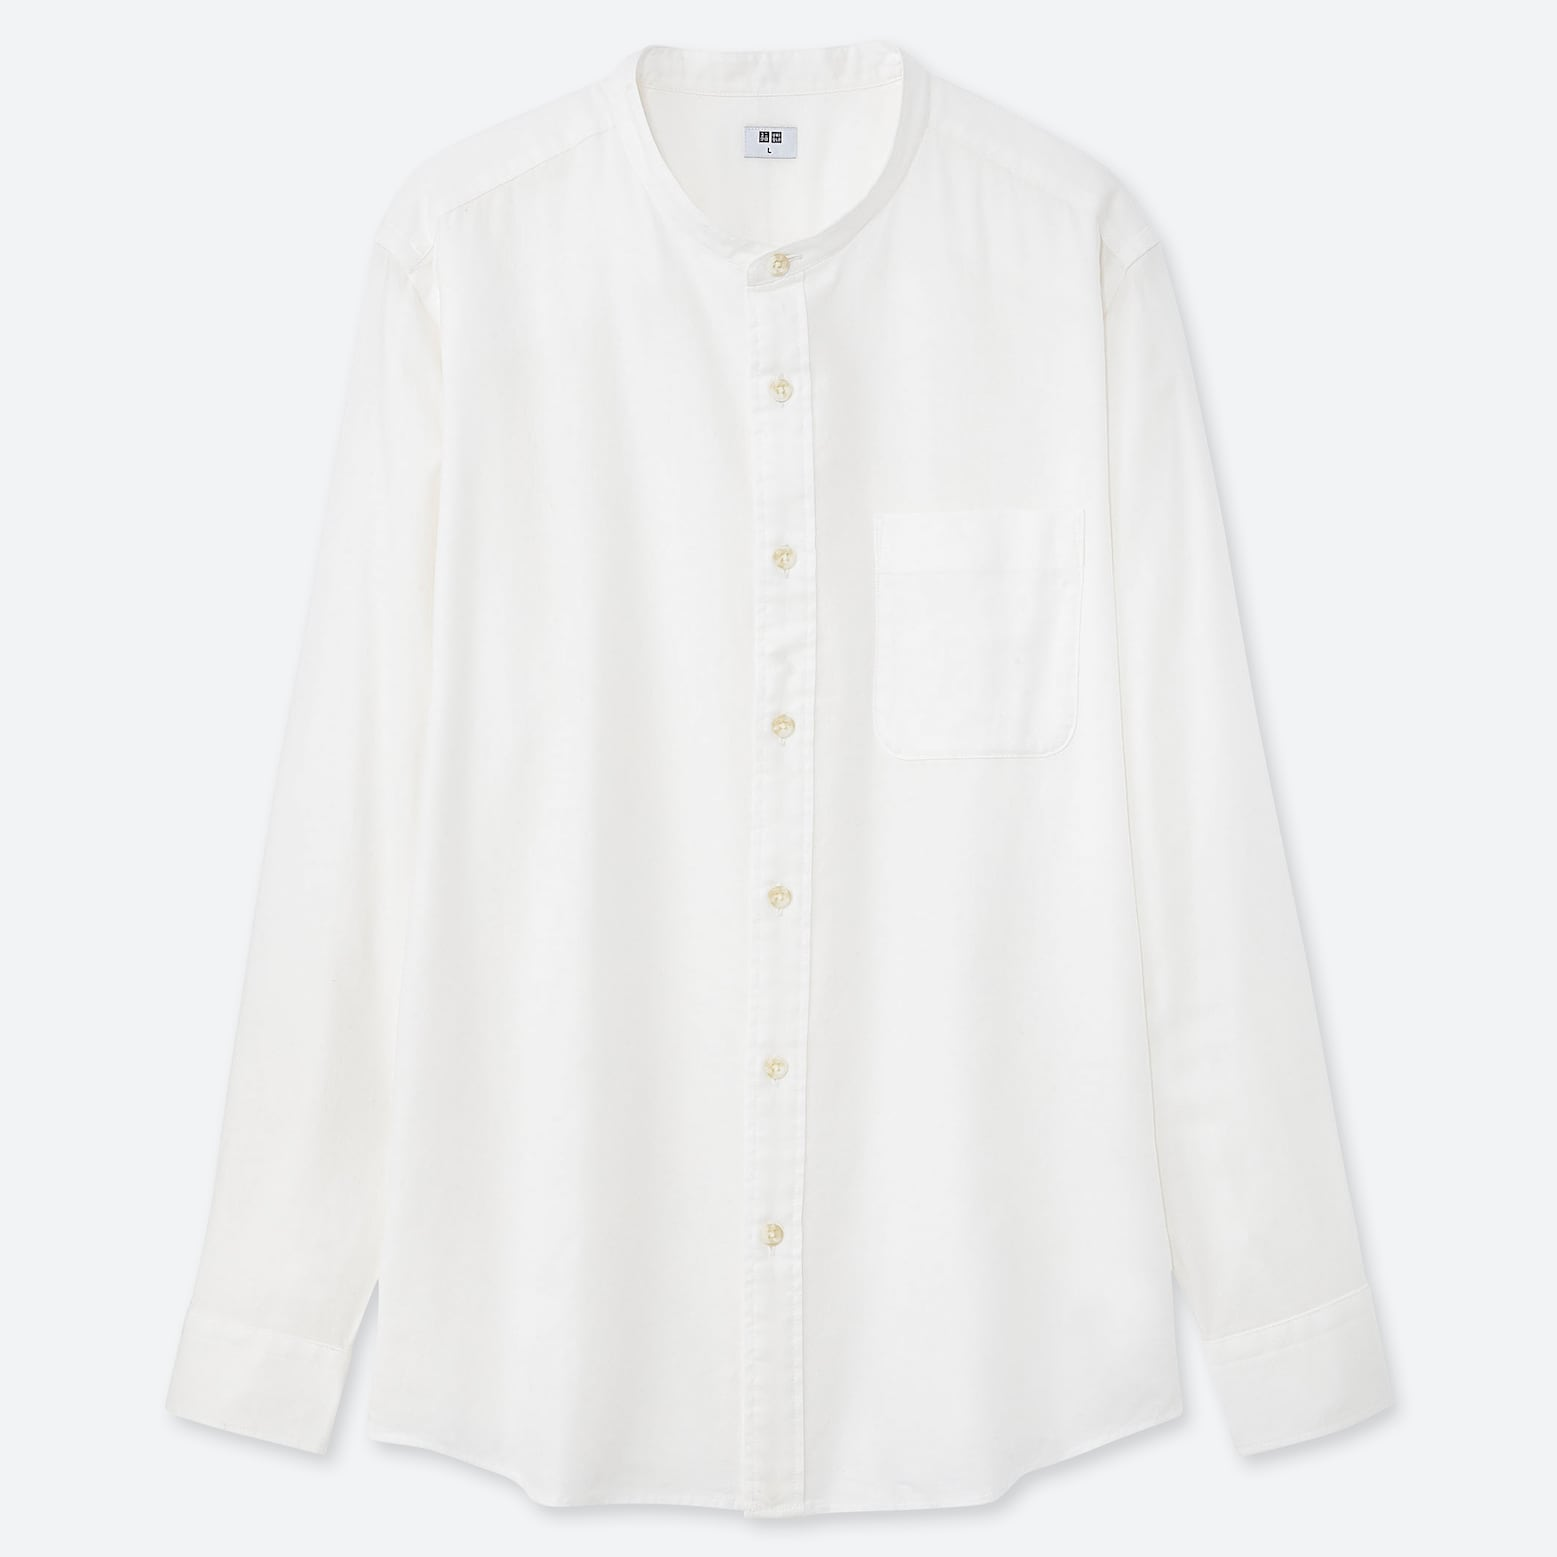 Soft Twill Stand Collar Long Sleeve Shirt by Uniqlo